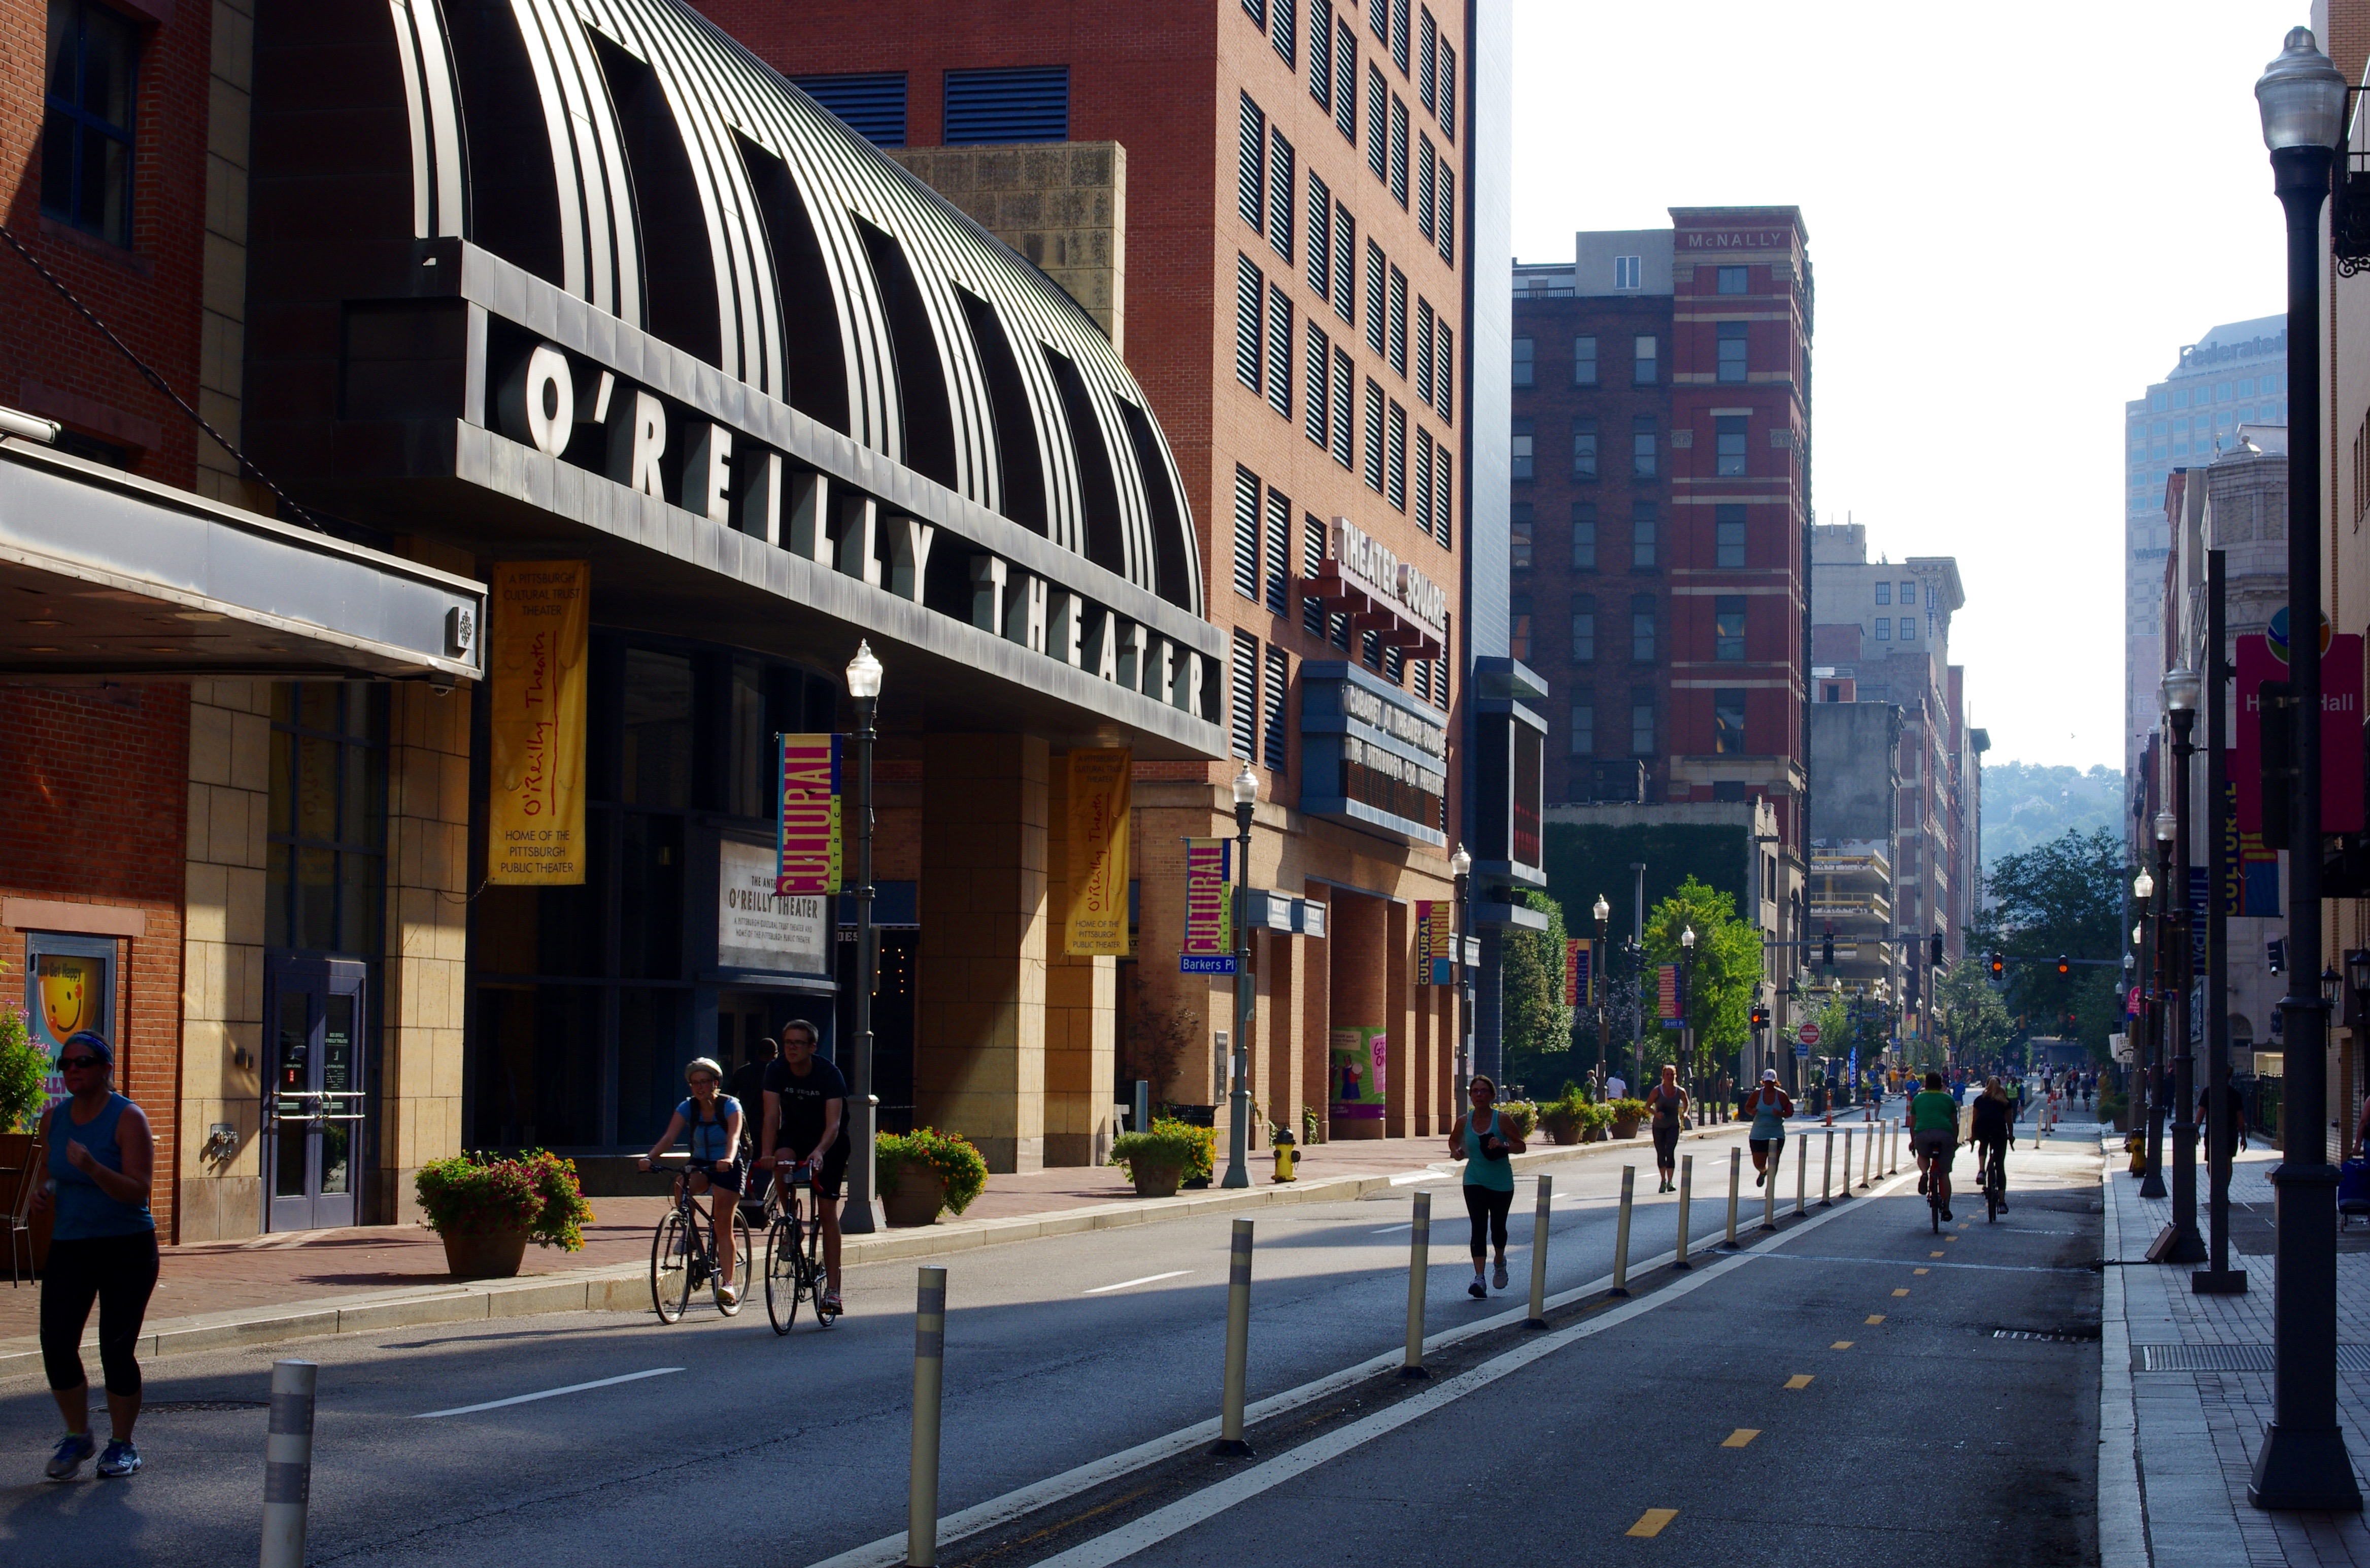 Runners approach the finish of a 5km running route in Downtown.